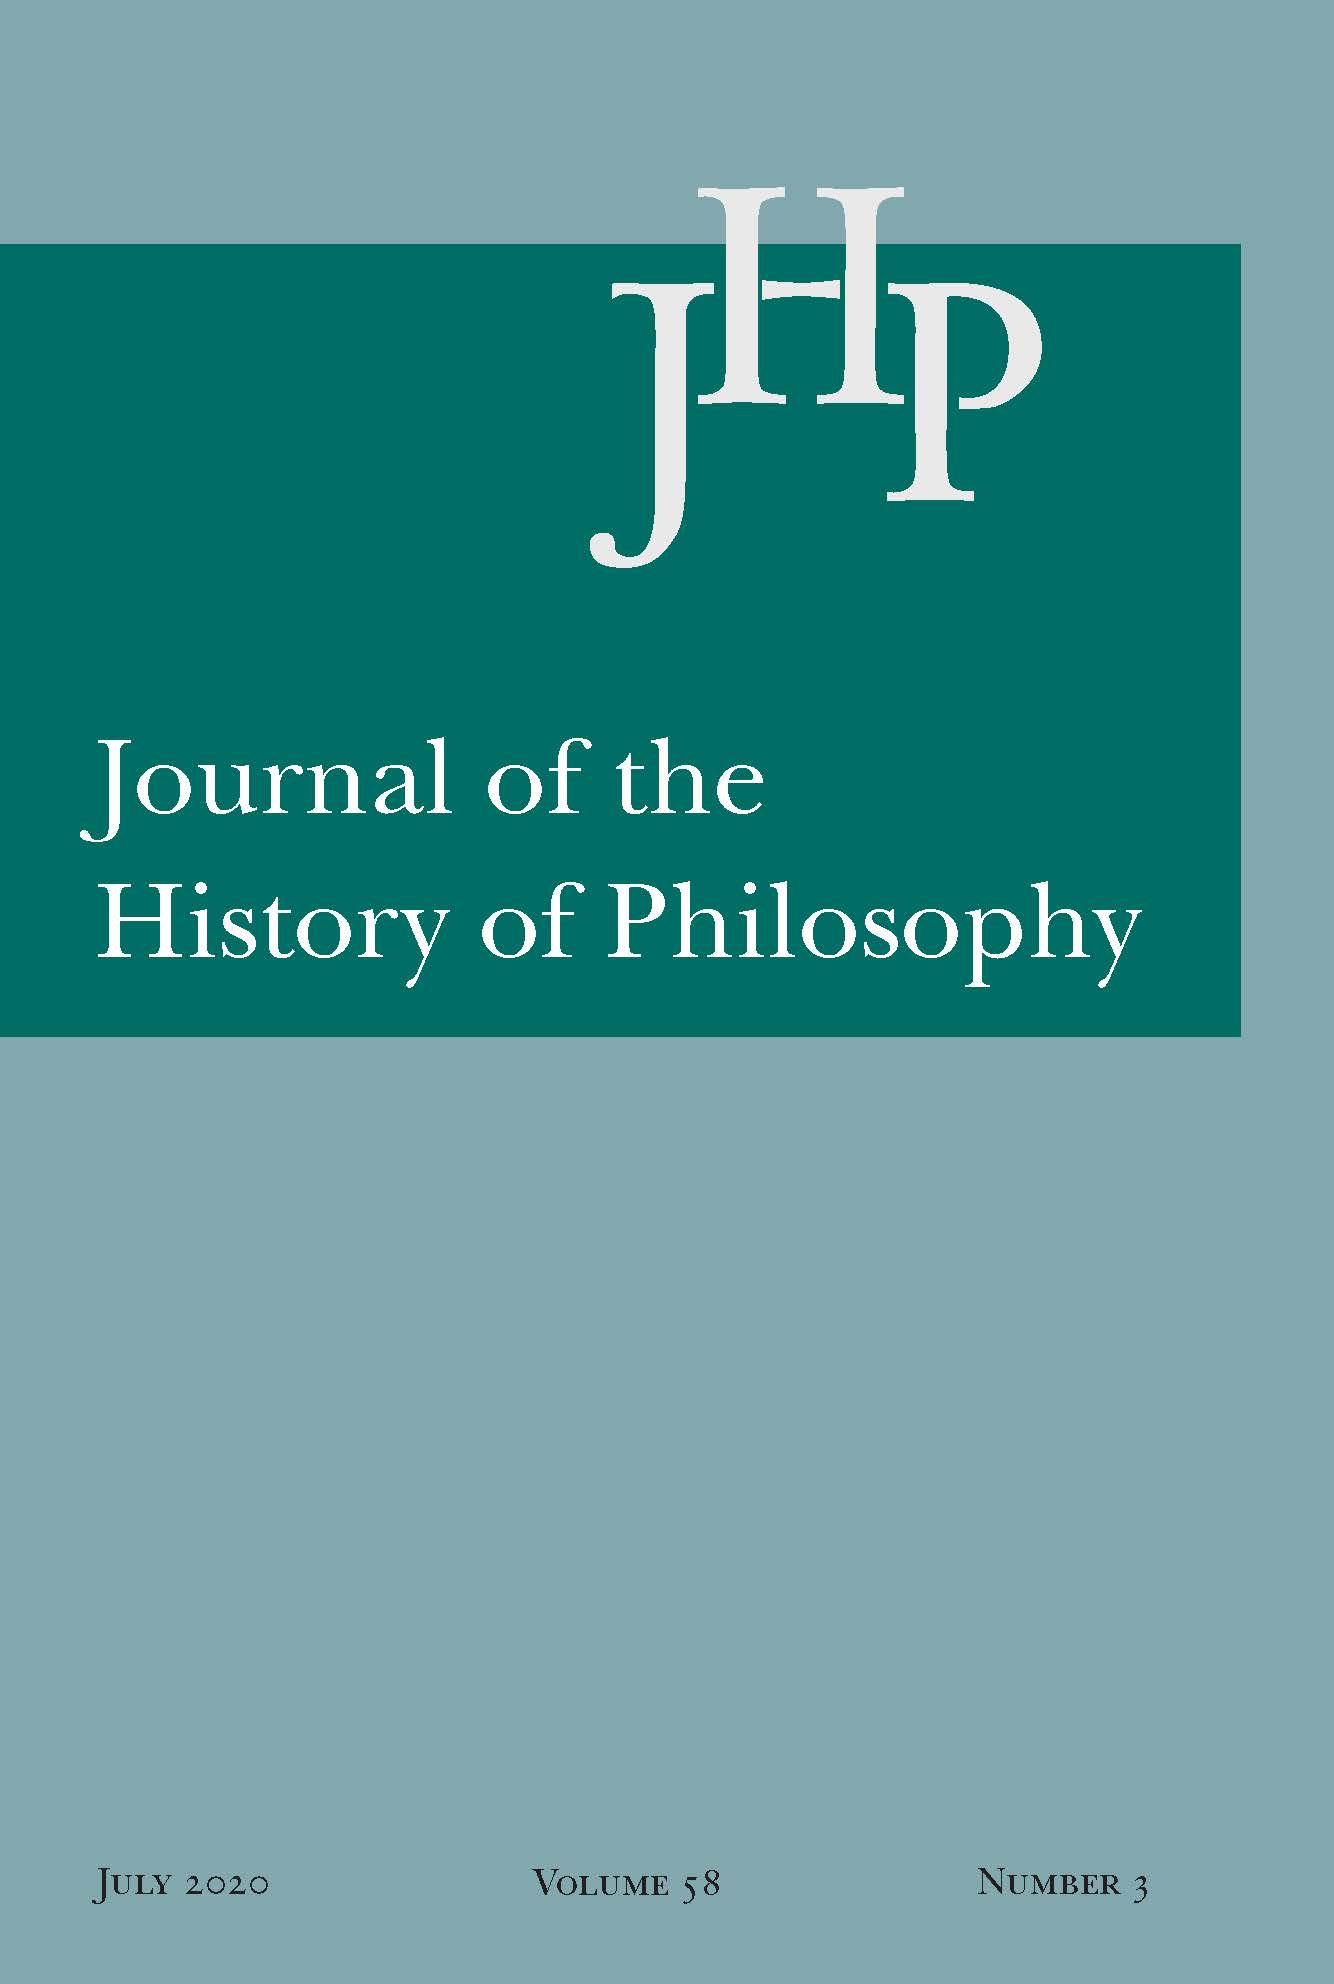 Journal of the History of Philosophy: Volume 58, Number 3, July 2020